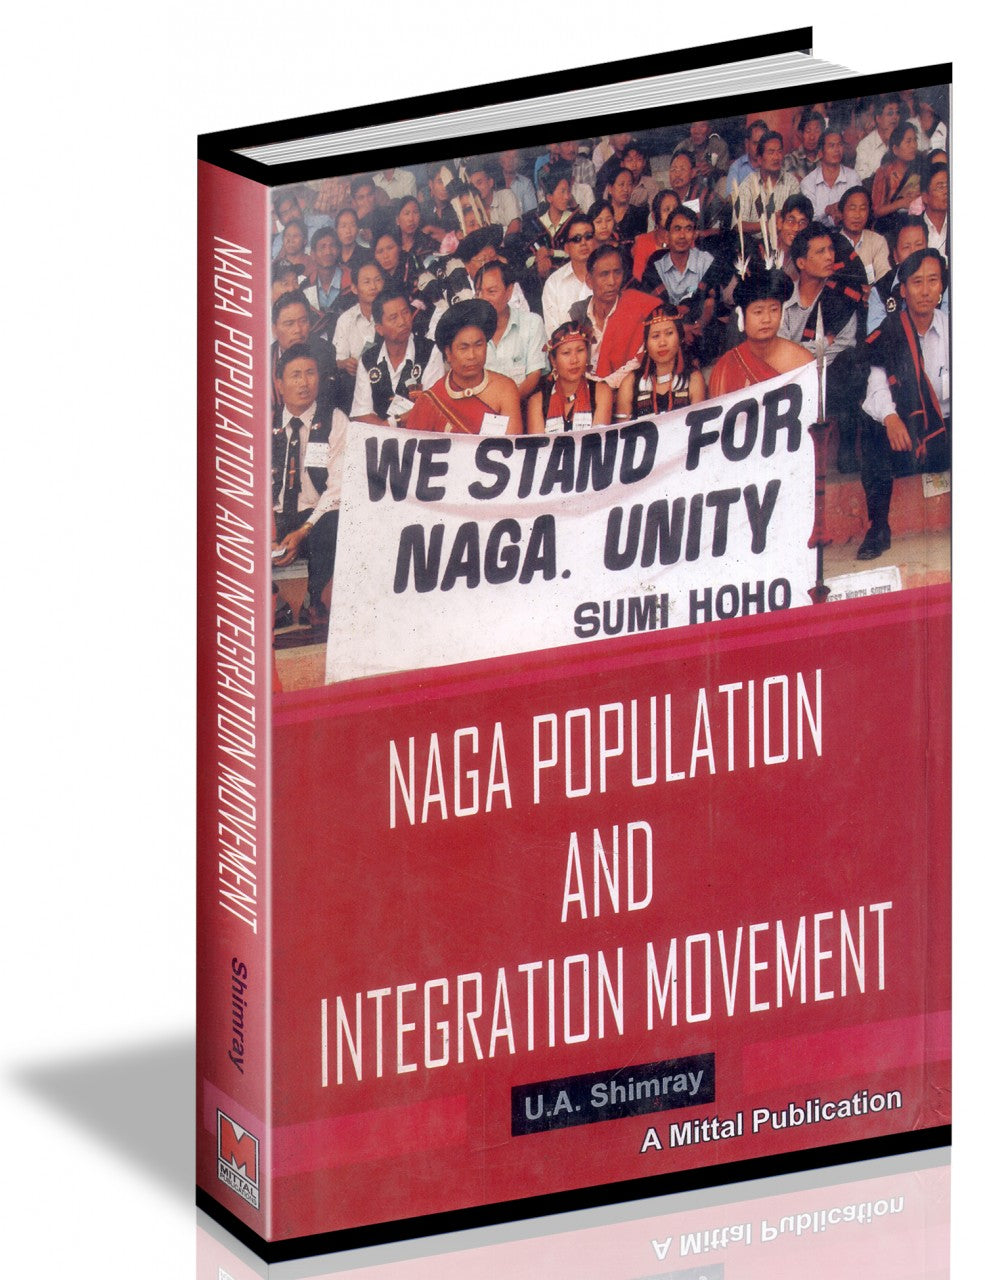 Naga Population And Integration Movement